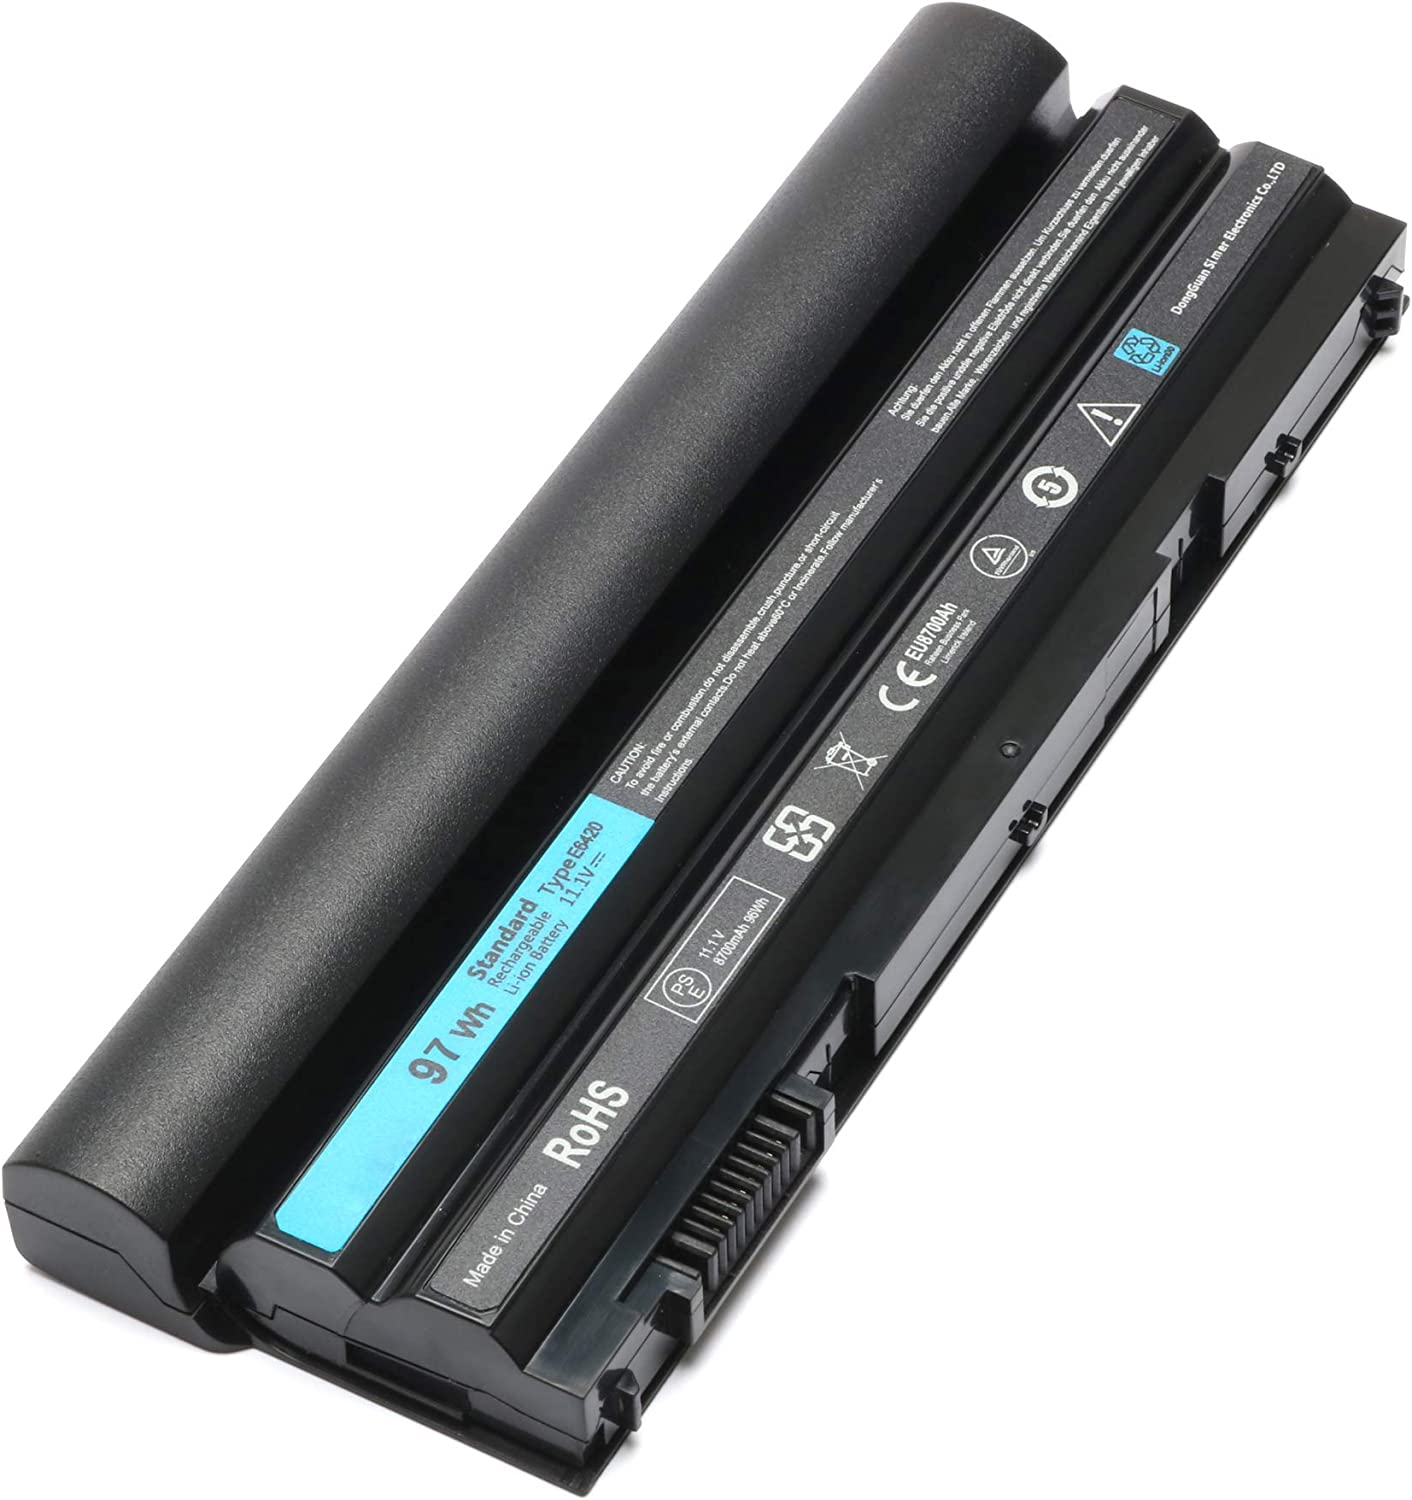 E6420 for Suitable Dell Latitude E5520 E6430 E5420 E5430 E5530 E6530 Series Laptop Batteries Compatible with T54FJ T54F3 M5Y0X X57F1 KJ321 NHXVW PRRRF PRV1Y HCJWT 7FJ92 P8TC7 P9TJ0 312-1163 312-1165